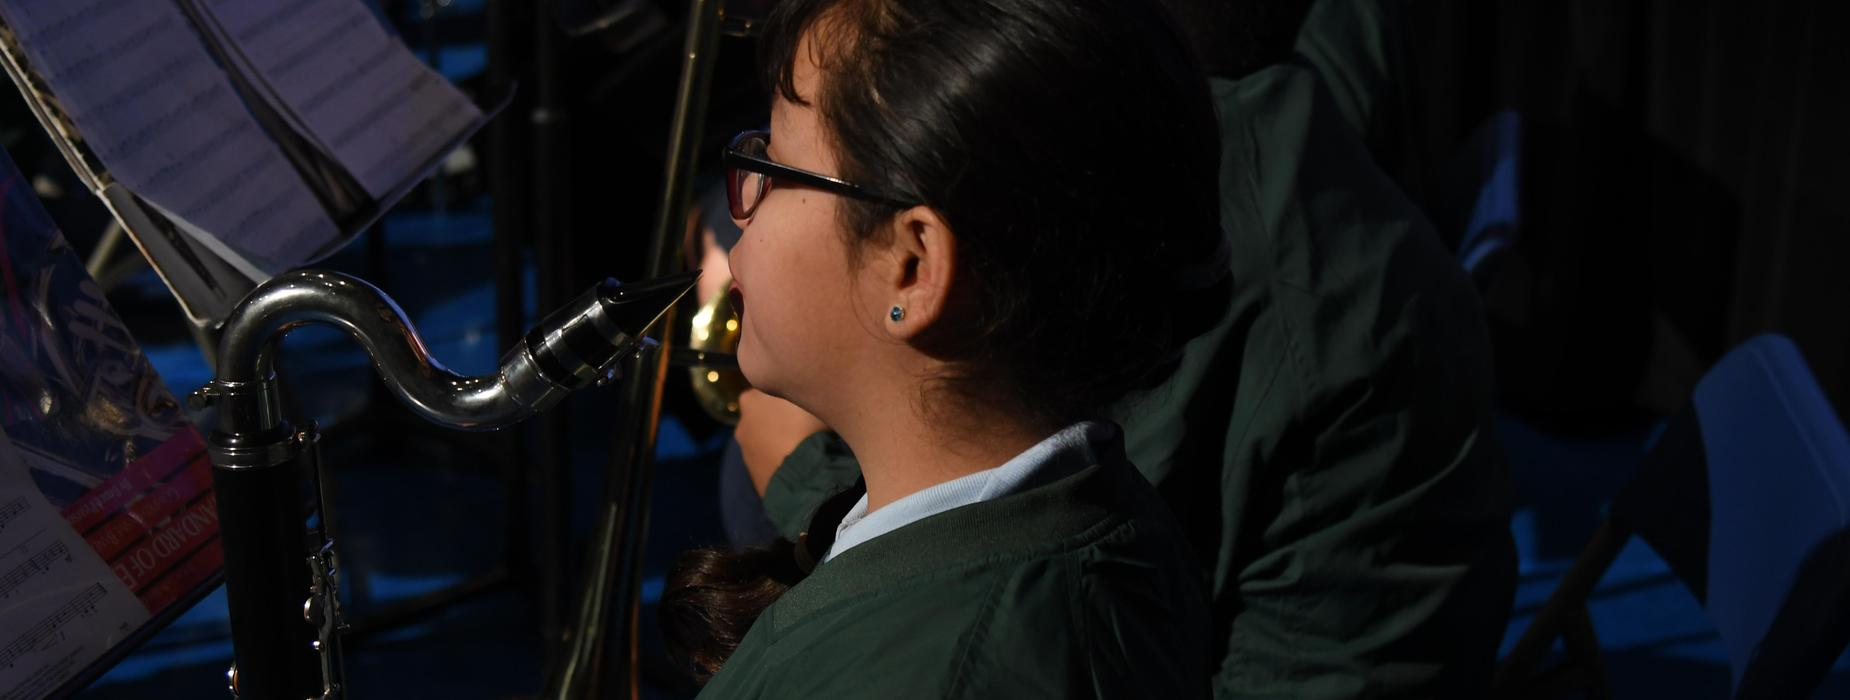 Girl in Band